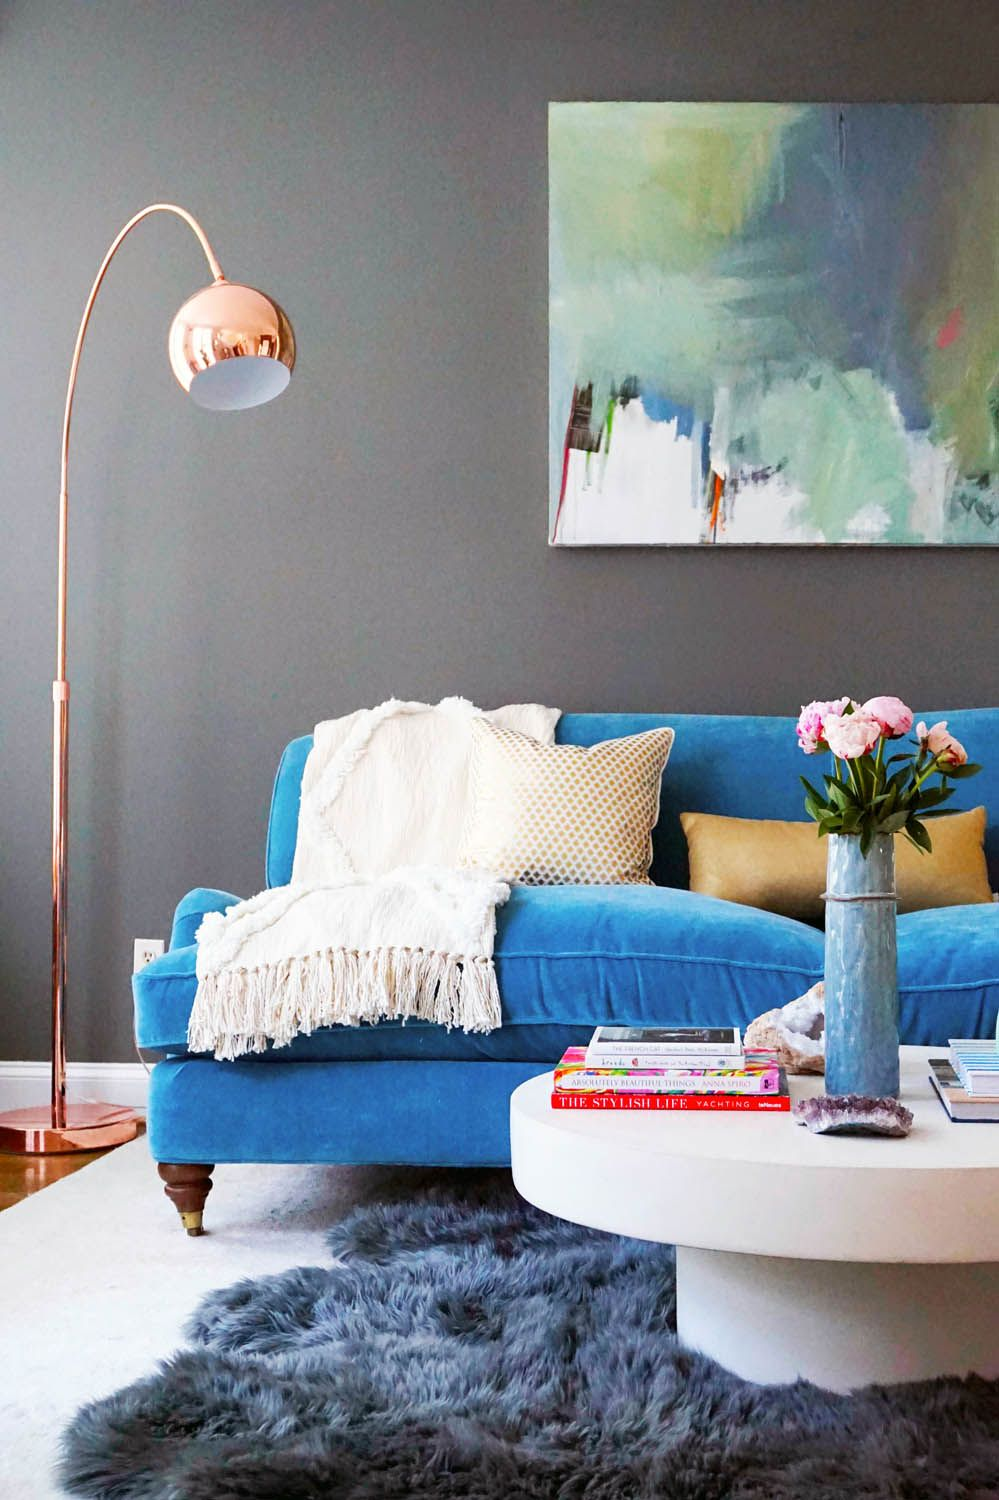 Blue velvet sofa with grey walls and colorful abstract art a